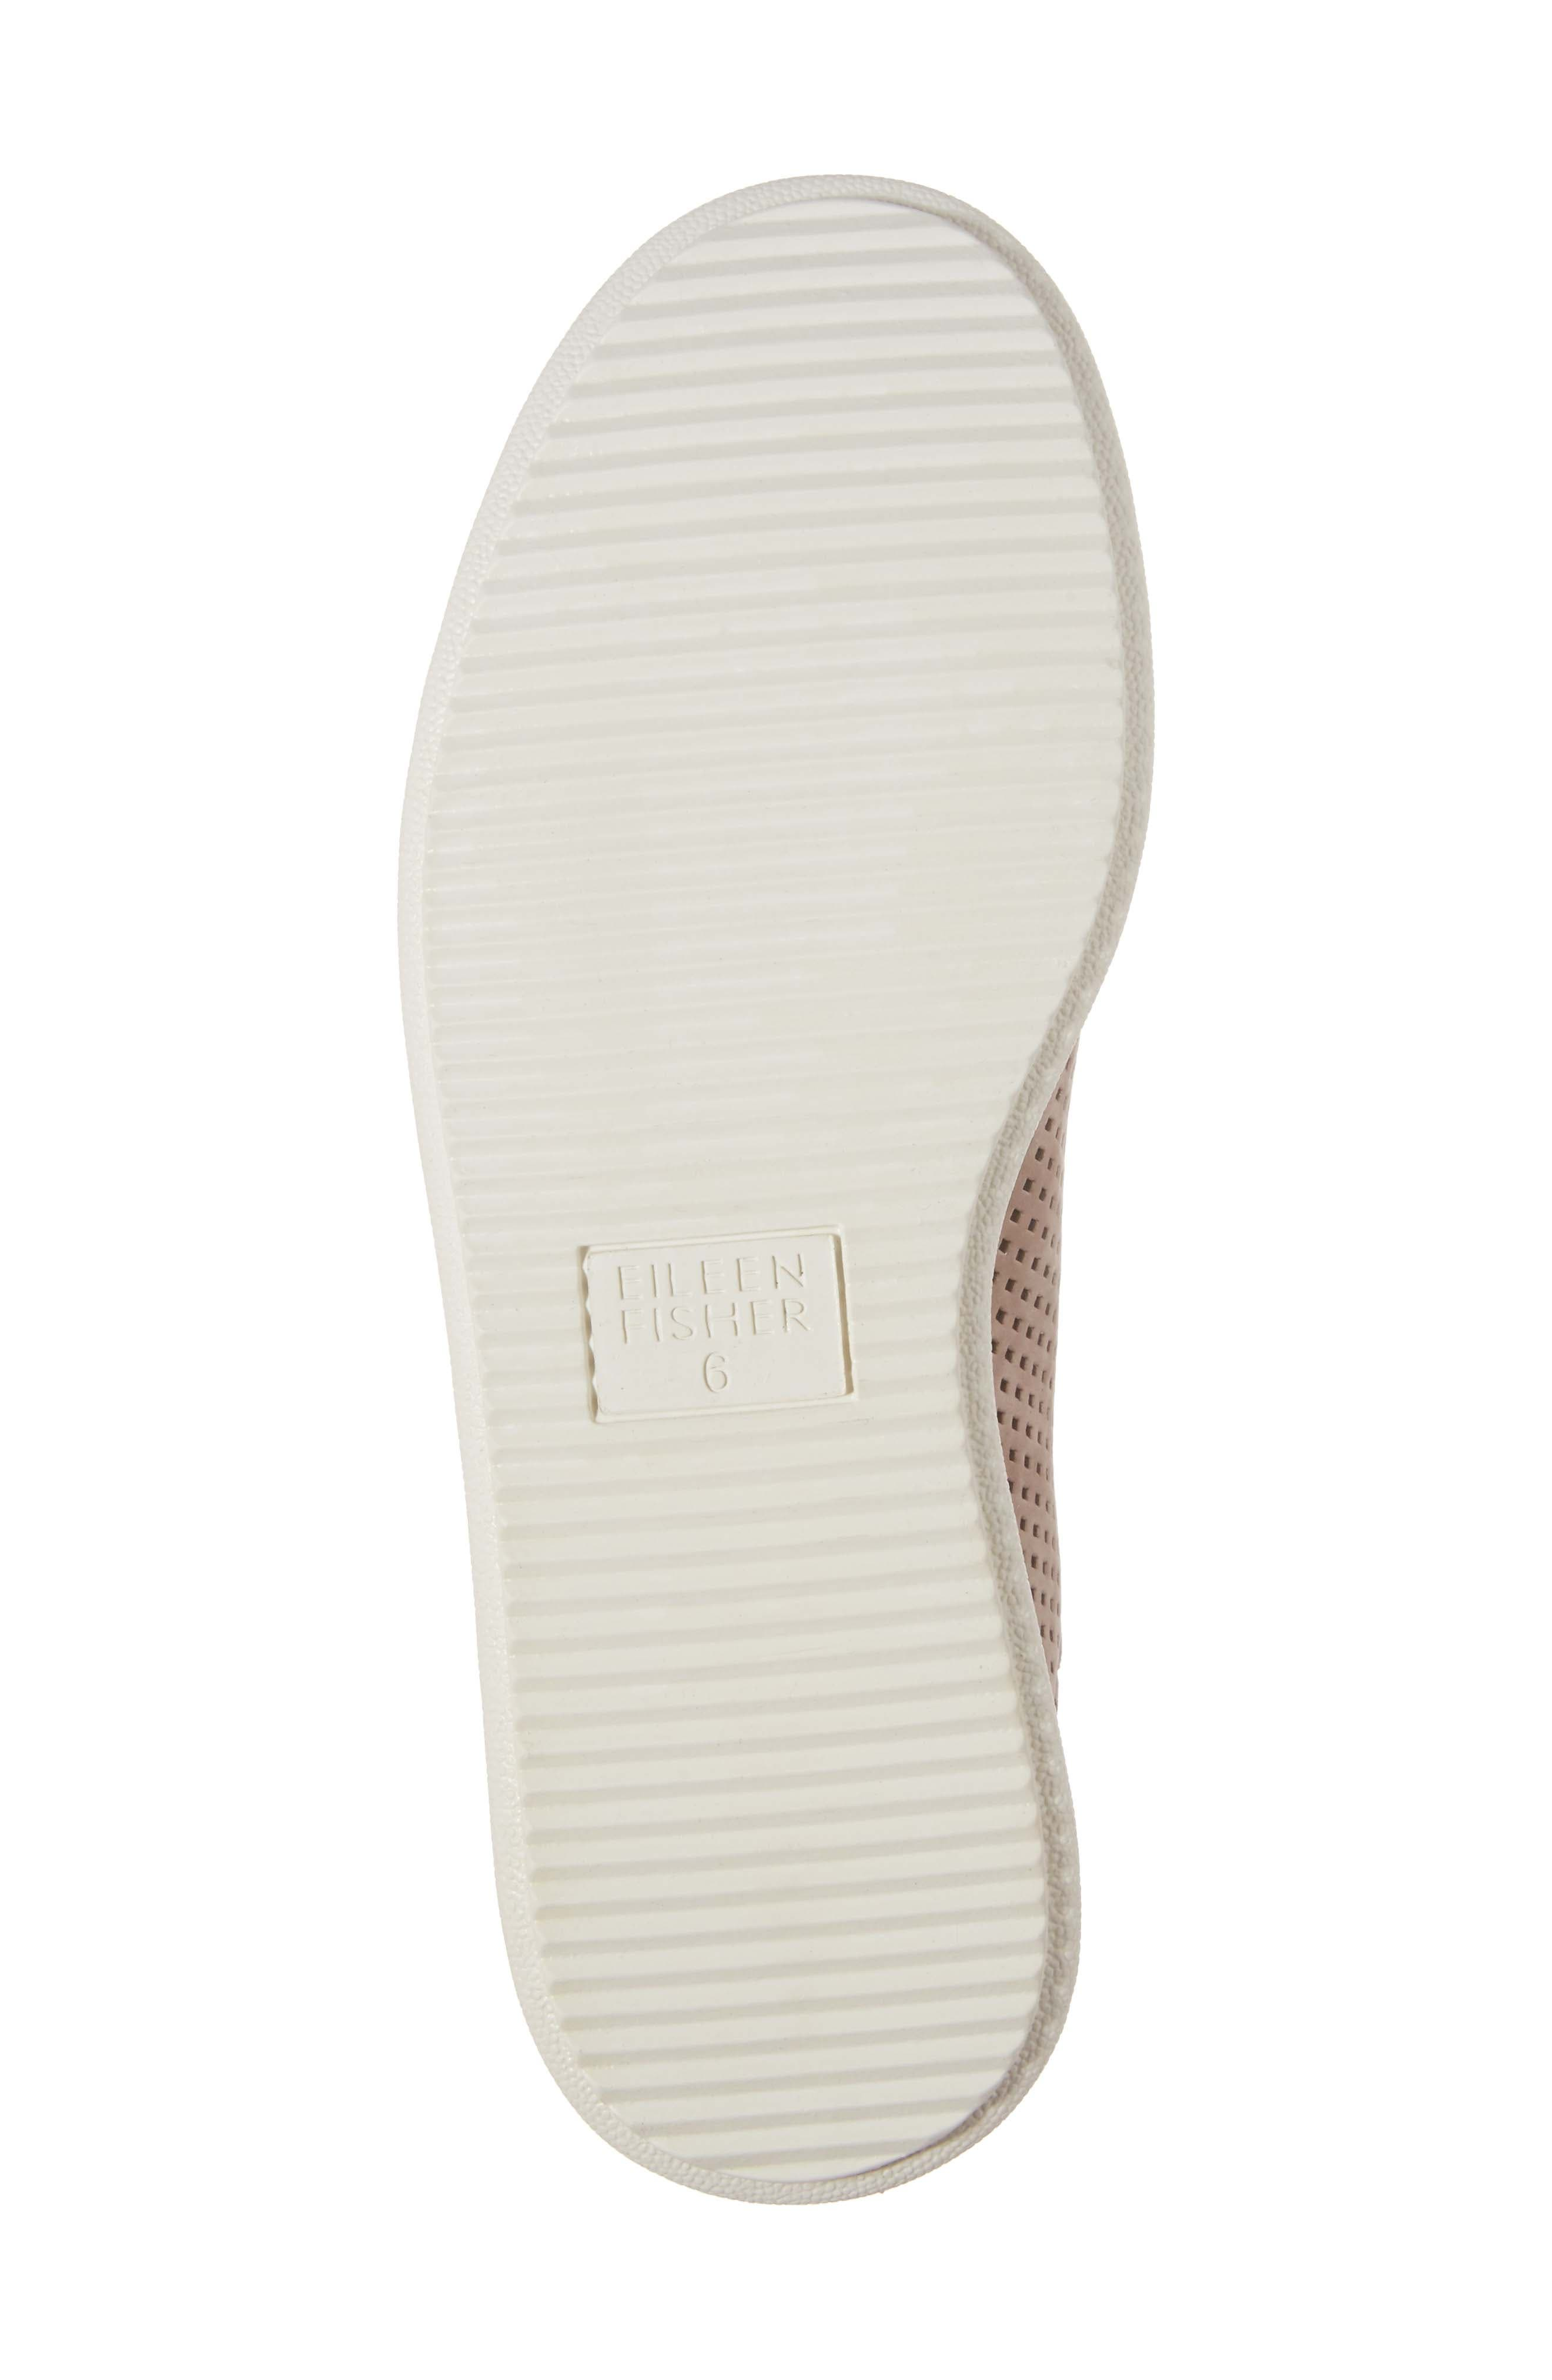 Clifton Perforated Sneaker,                             Alternate thumbnail 6, color,                             Earth Perforated Leather